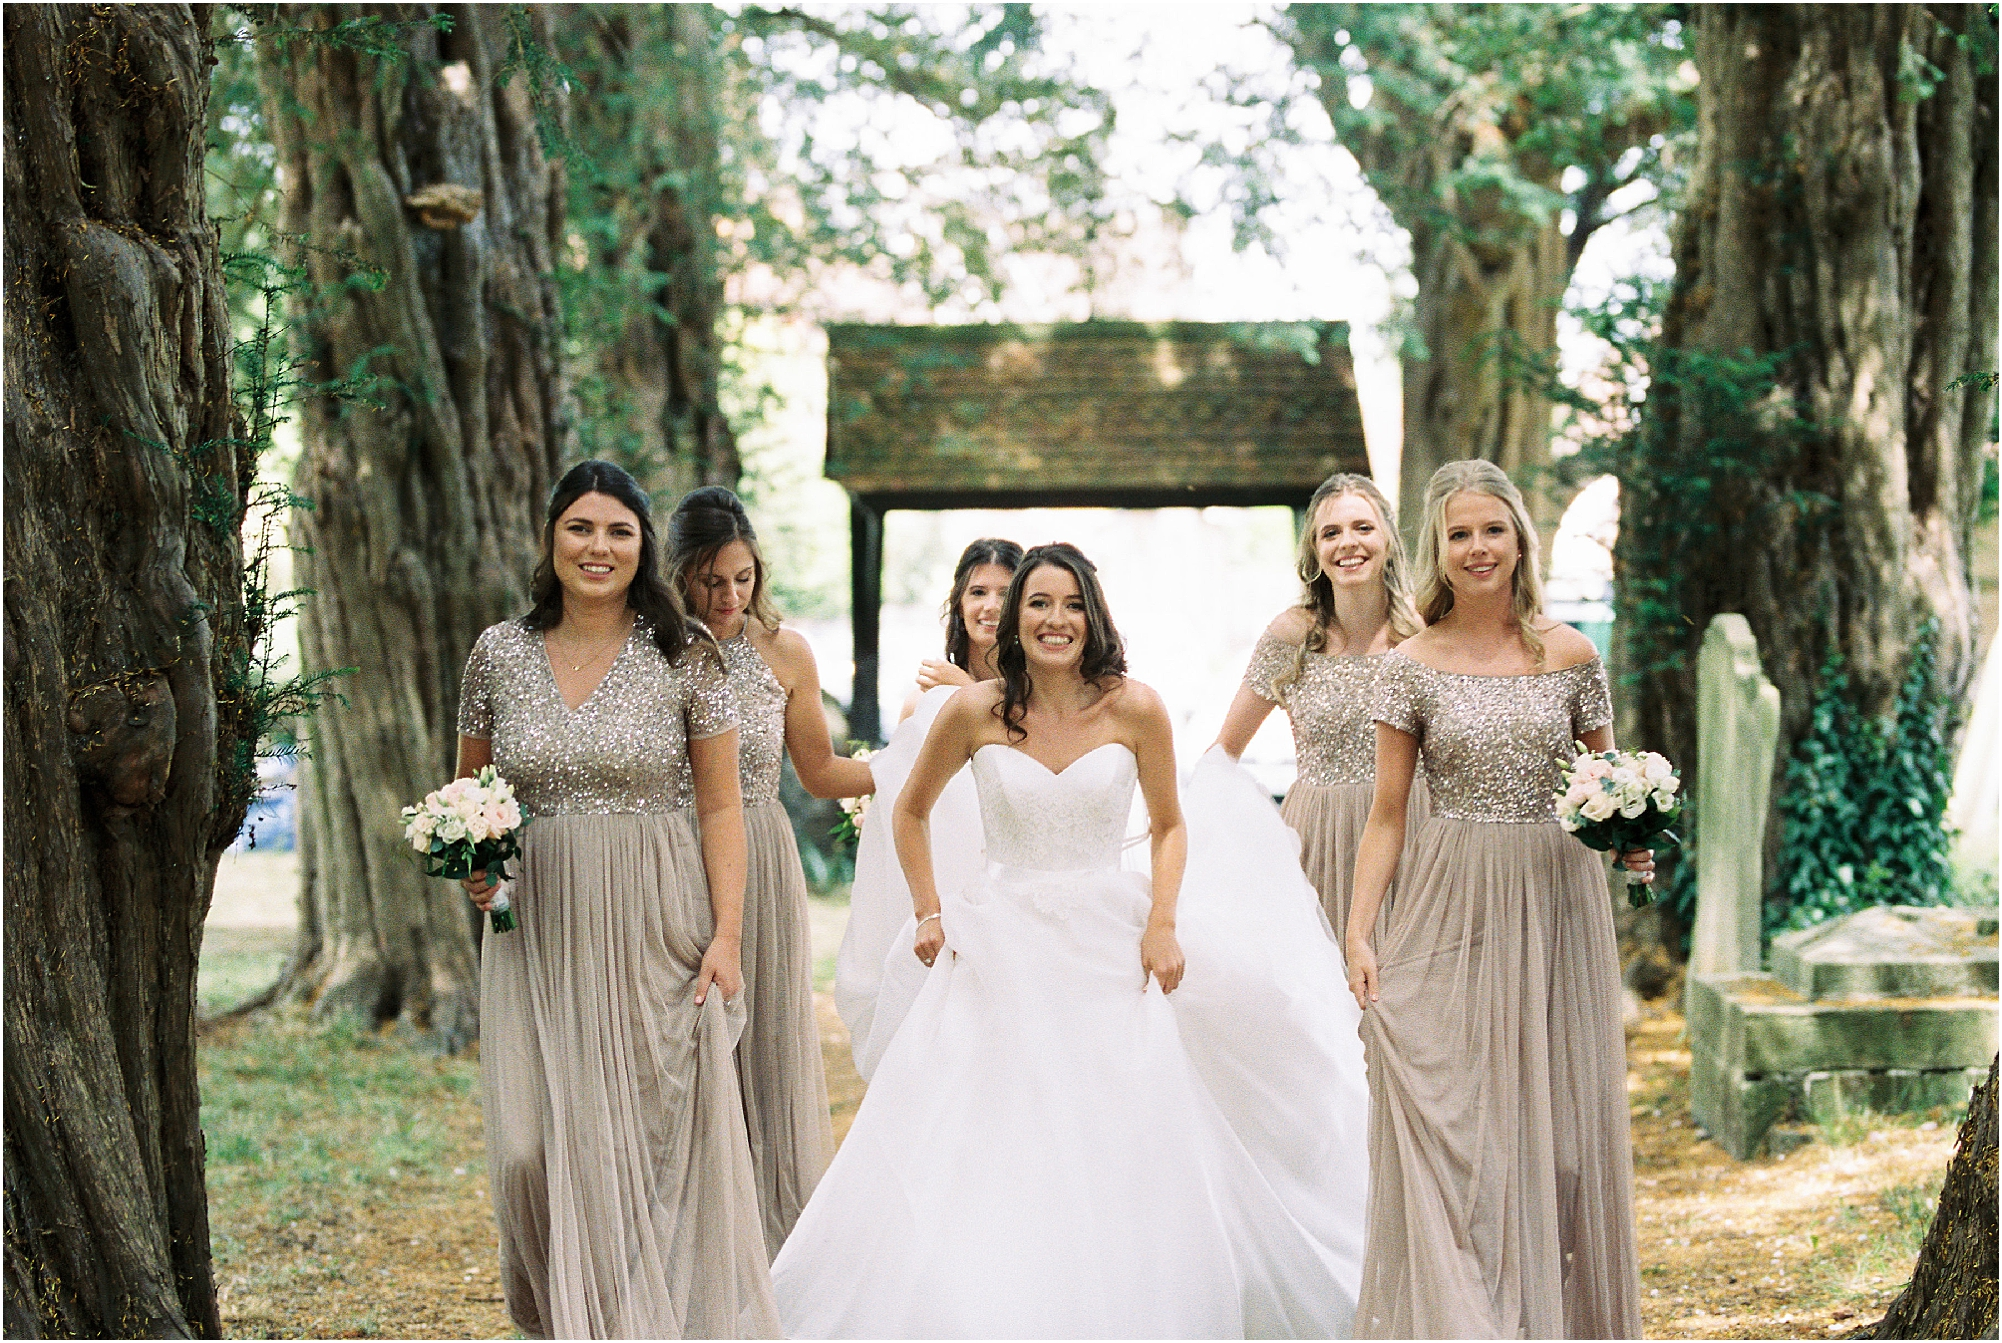 Bride and bridesmaids walking up path to church wedding